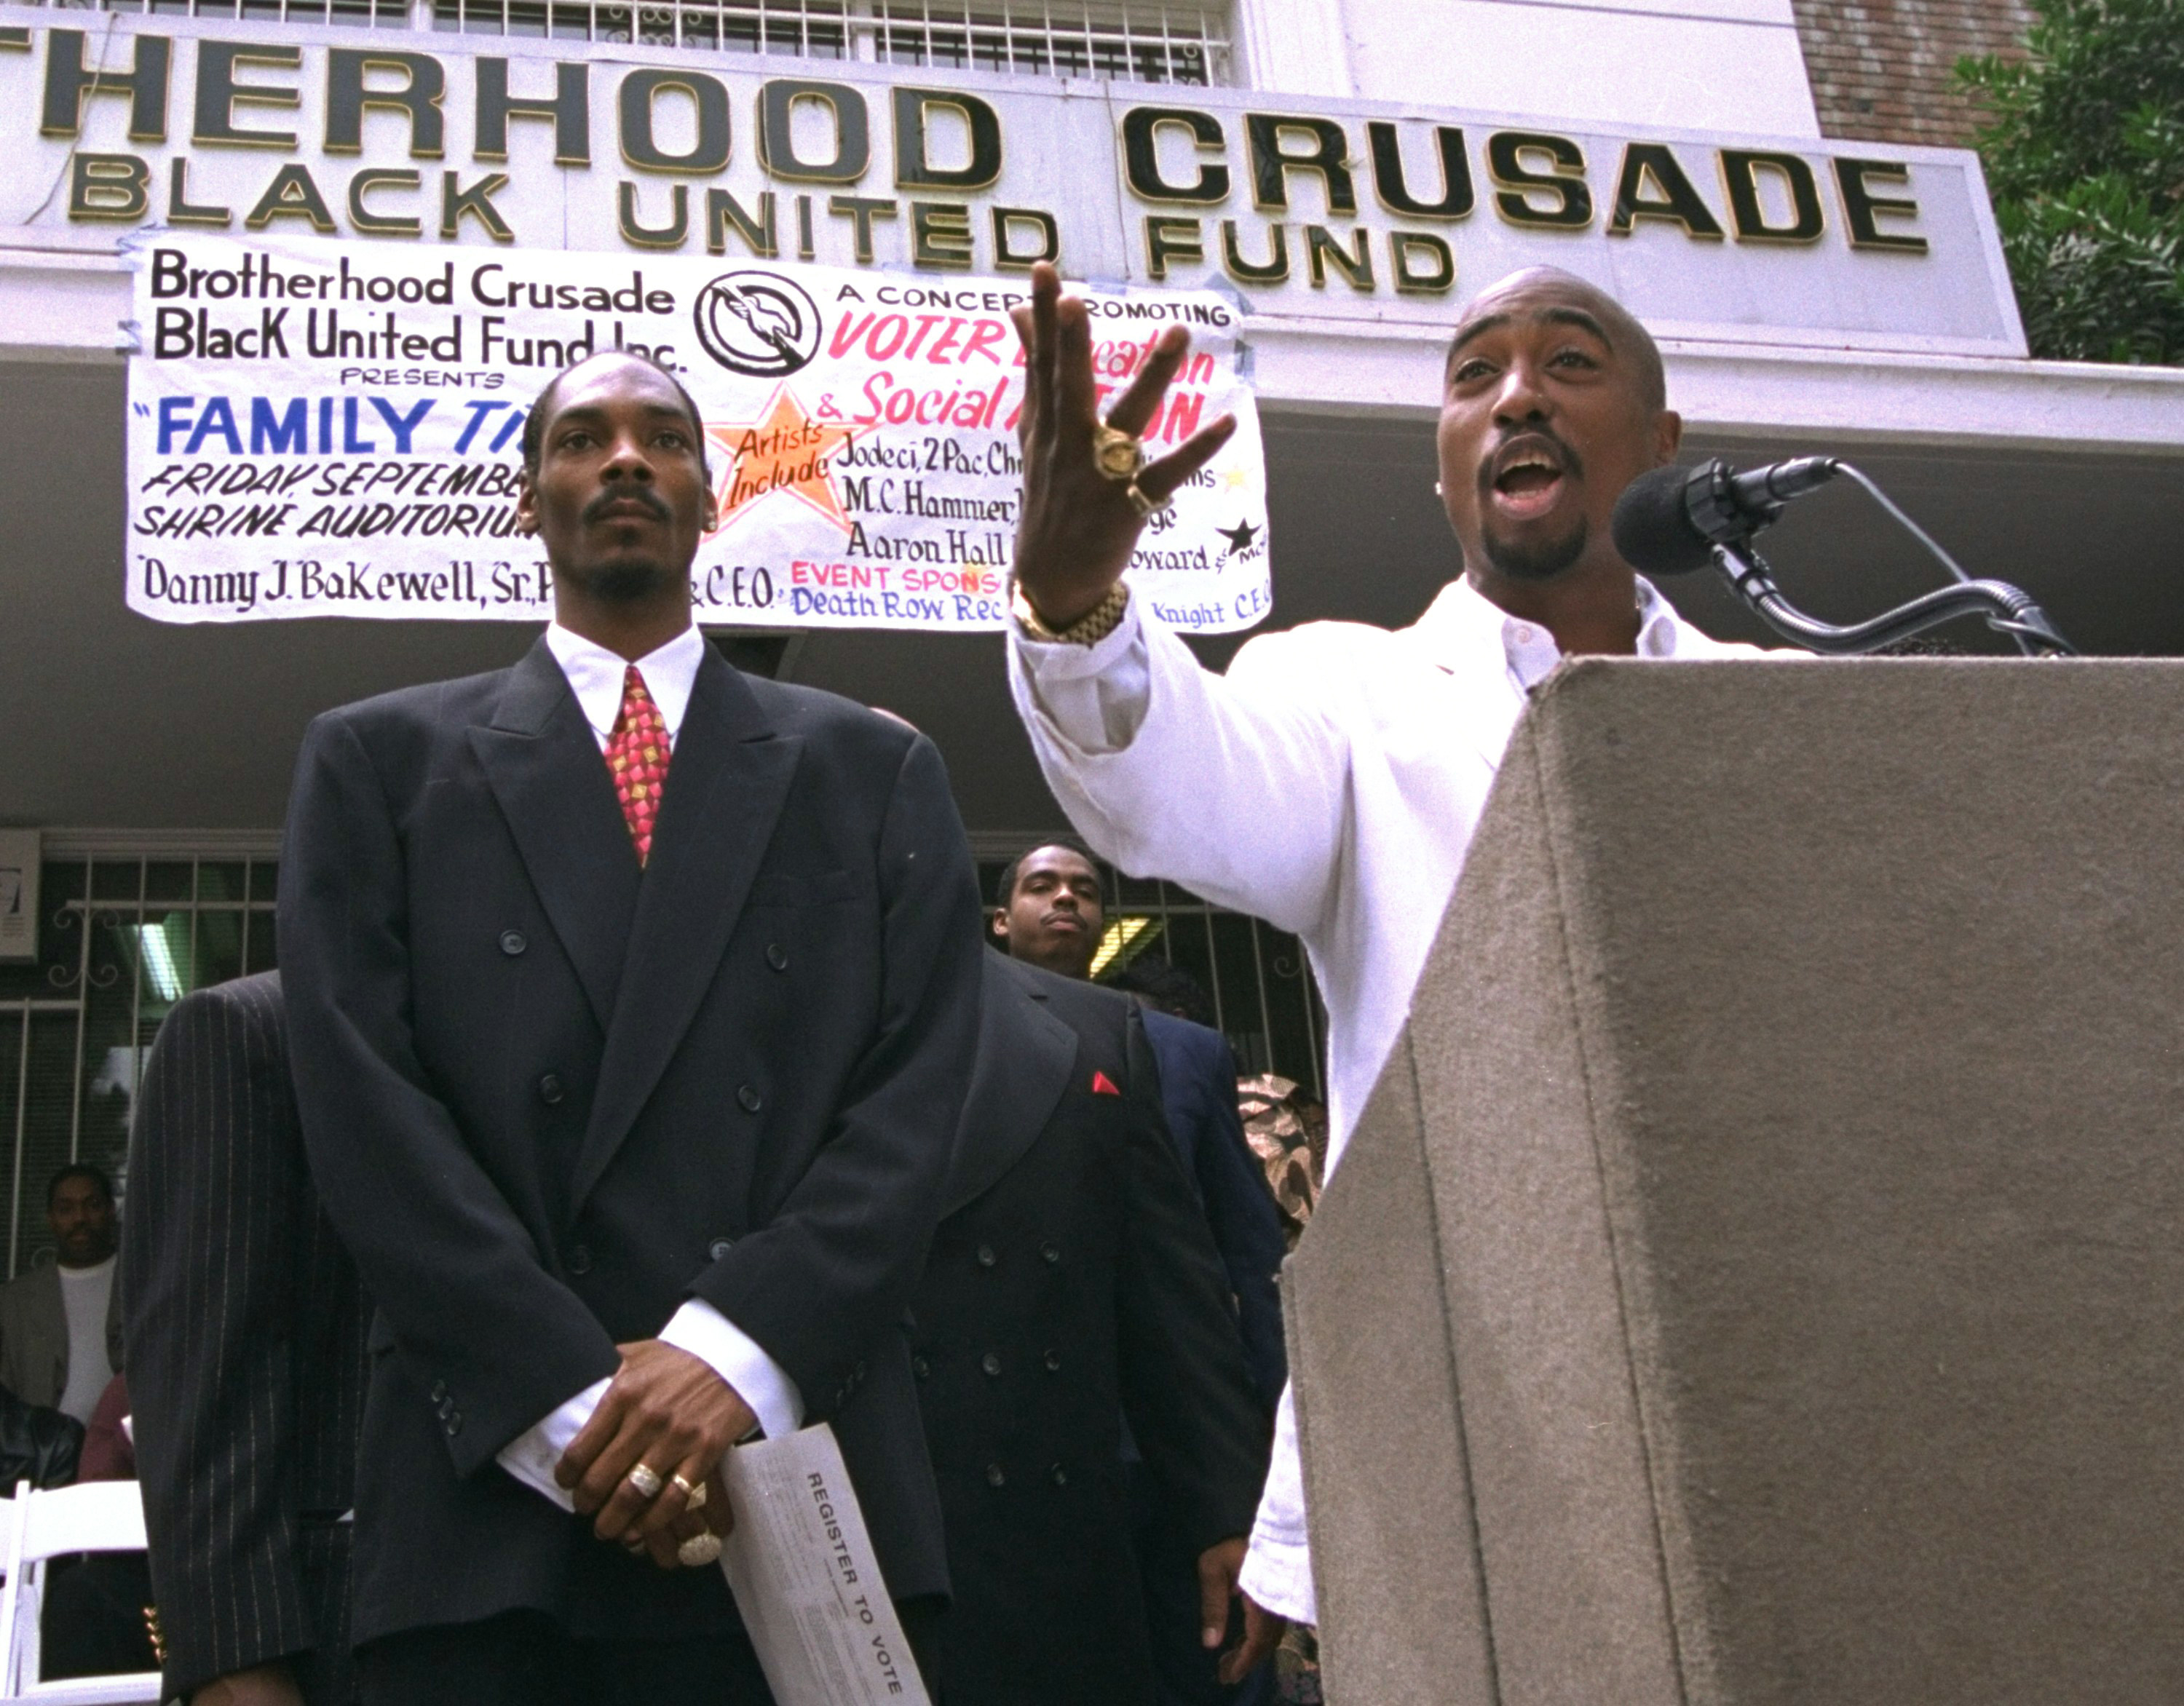 Tupac stands behind a lectern, speaks into a microphone, and gestures with his hand, standing next to Snoop Dogg in a suit